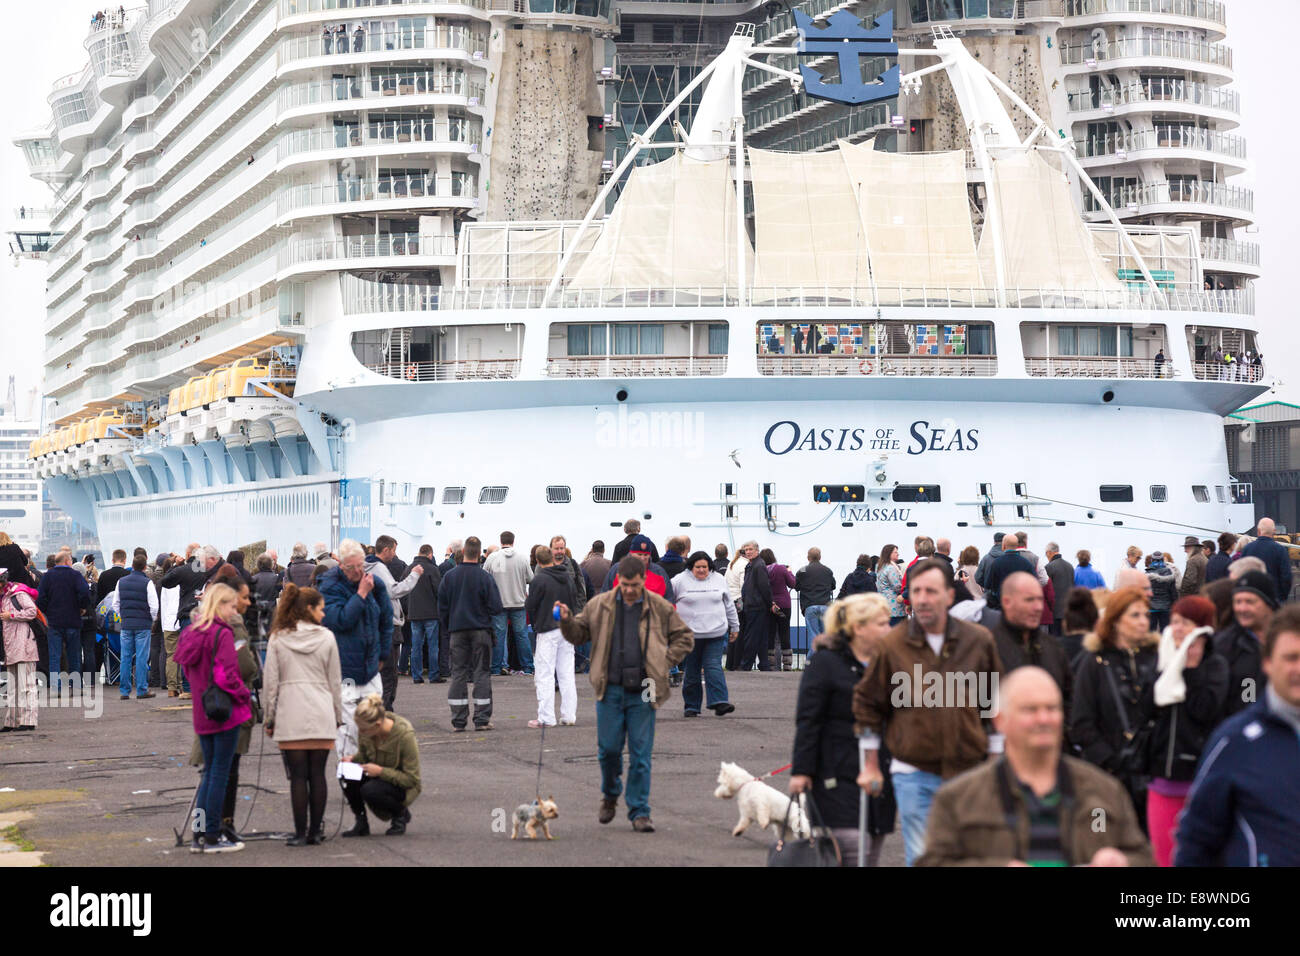 Ship spotters gather to see the world's largest cruise ship, Oasis of the Seas arrive in Southampton for a short Stock Photo